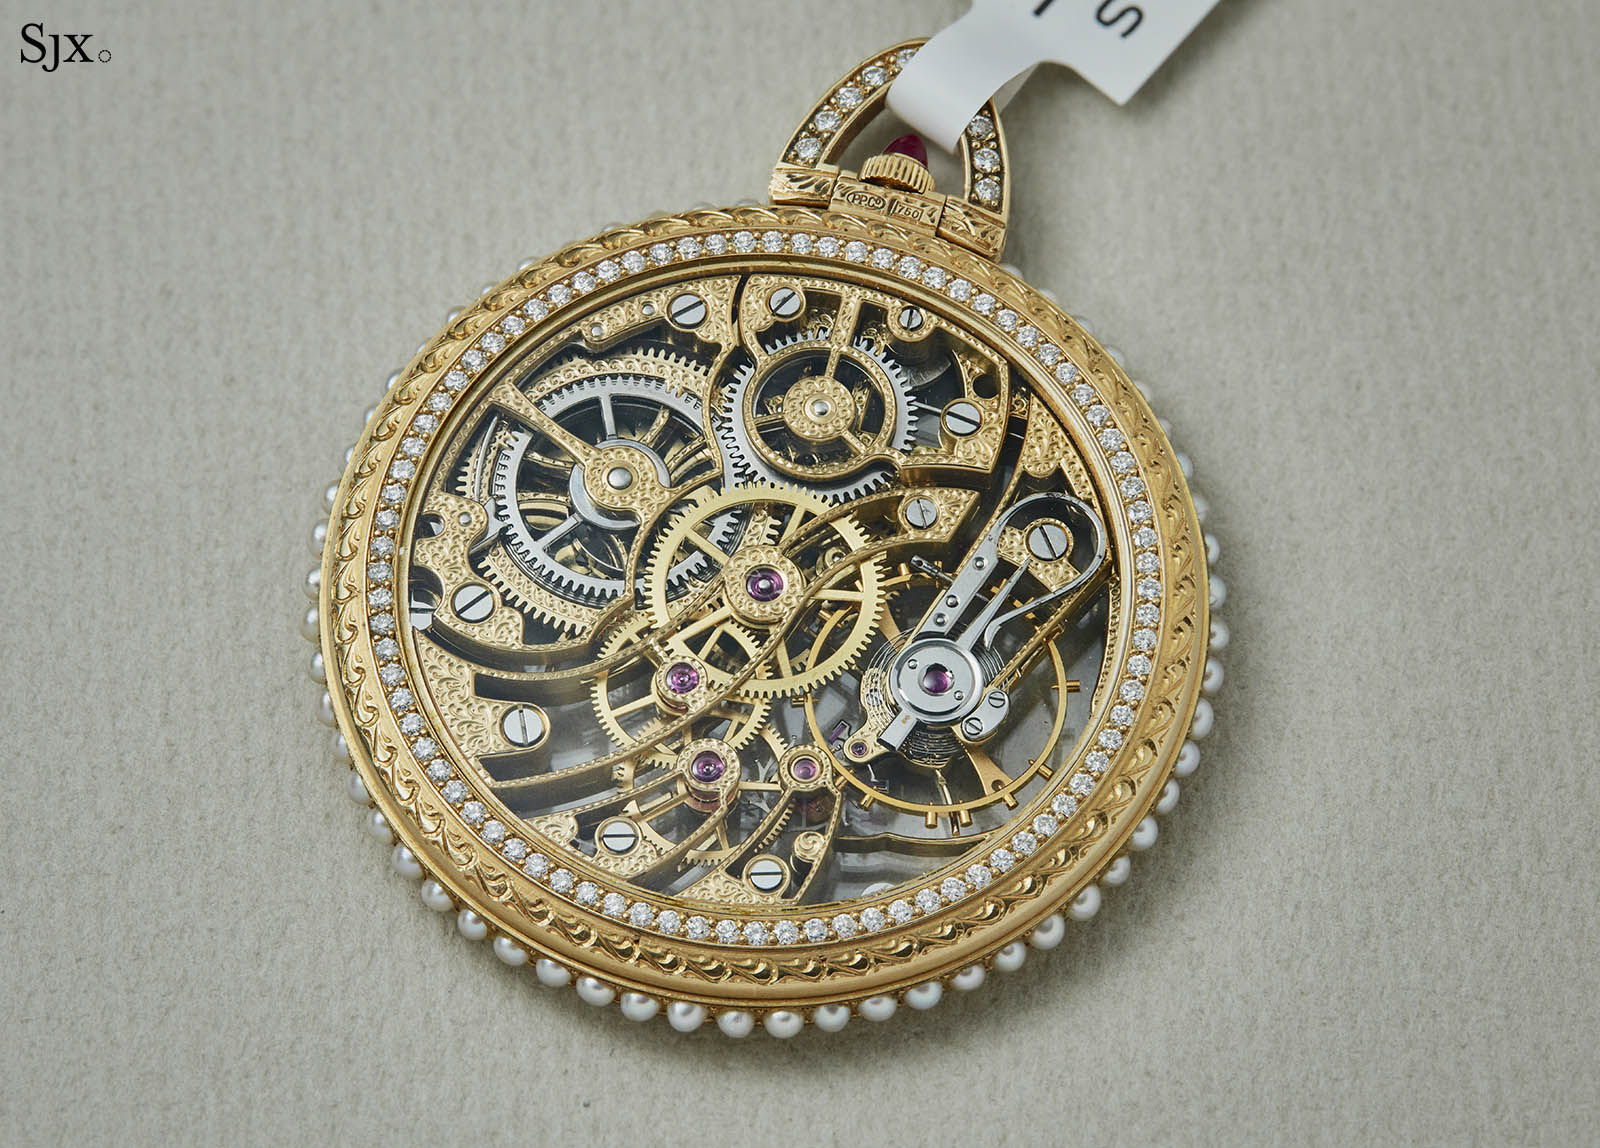 Patek Philippe Yellow Gold Skeleton Pocket Watch 5